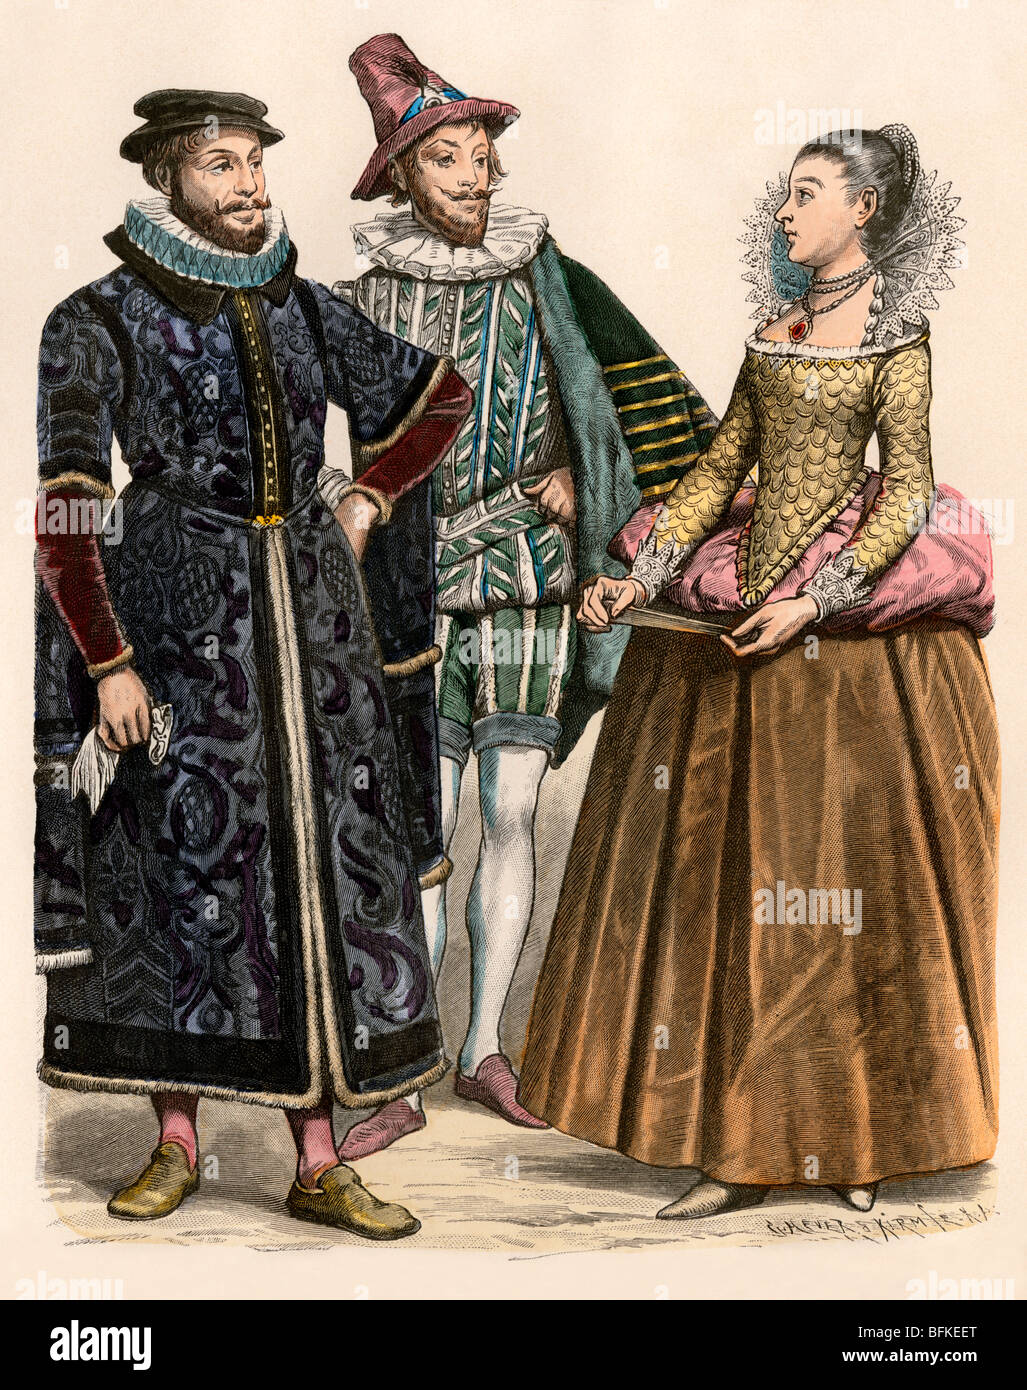 English merchant (left), noble, and a lady-in-waiting for Elizabeth I. Hand-colored print - Stock Image